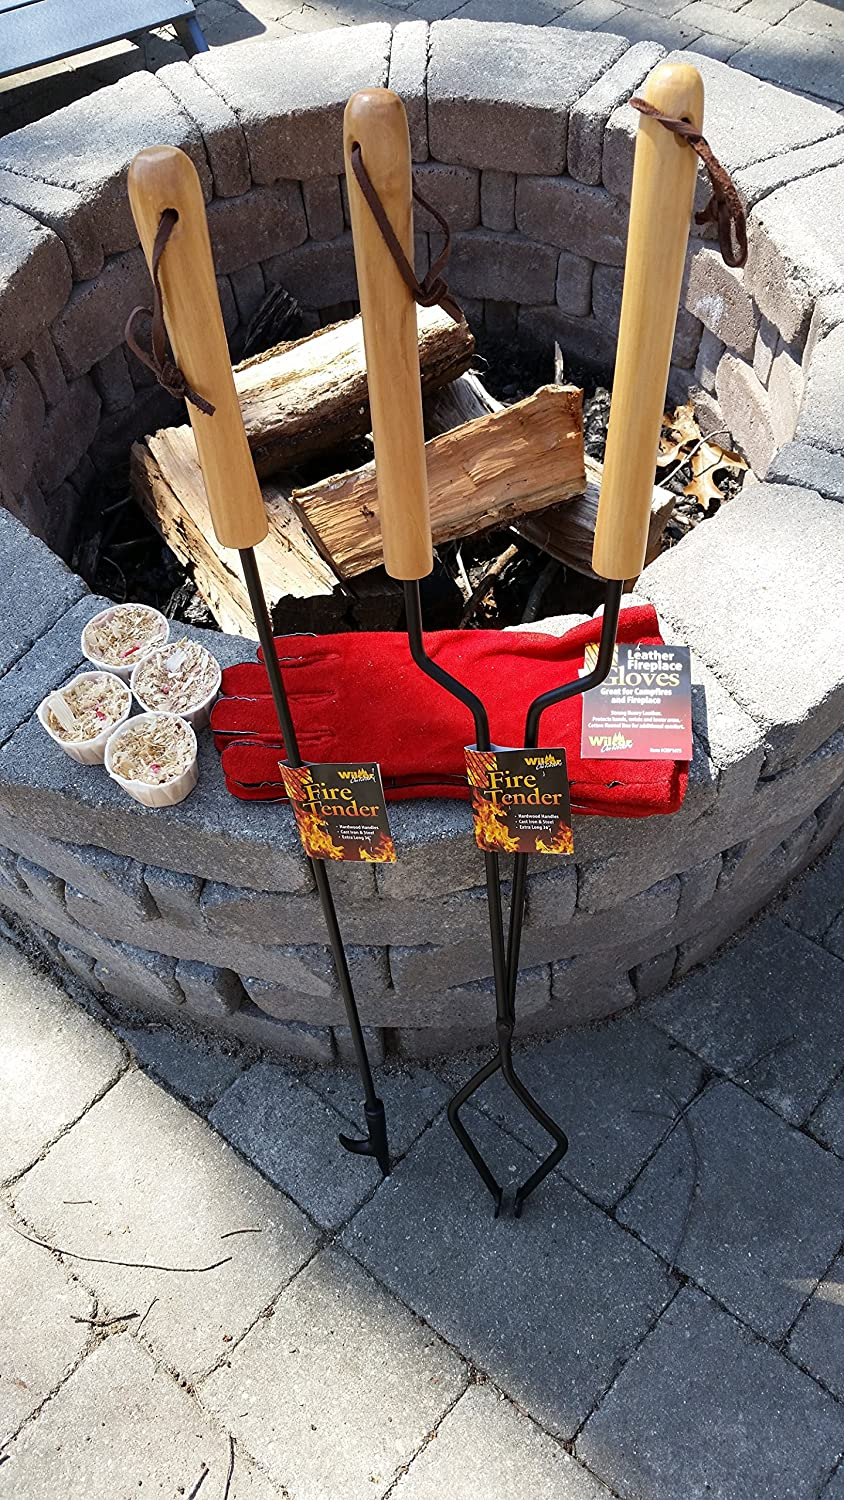 EXCURSIONS Journey To Health Fireplace Fire Pit Campfire Tool Gift Set Firetender Tongs Poker Gloves and Firestarters